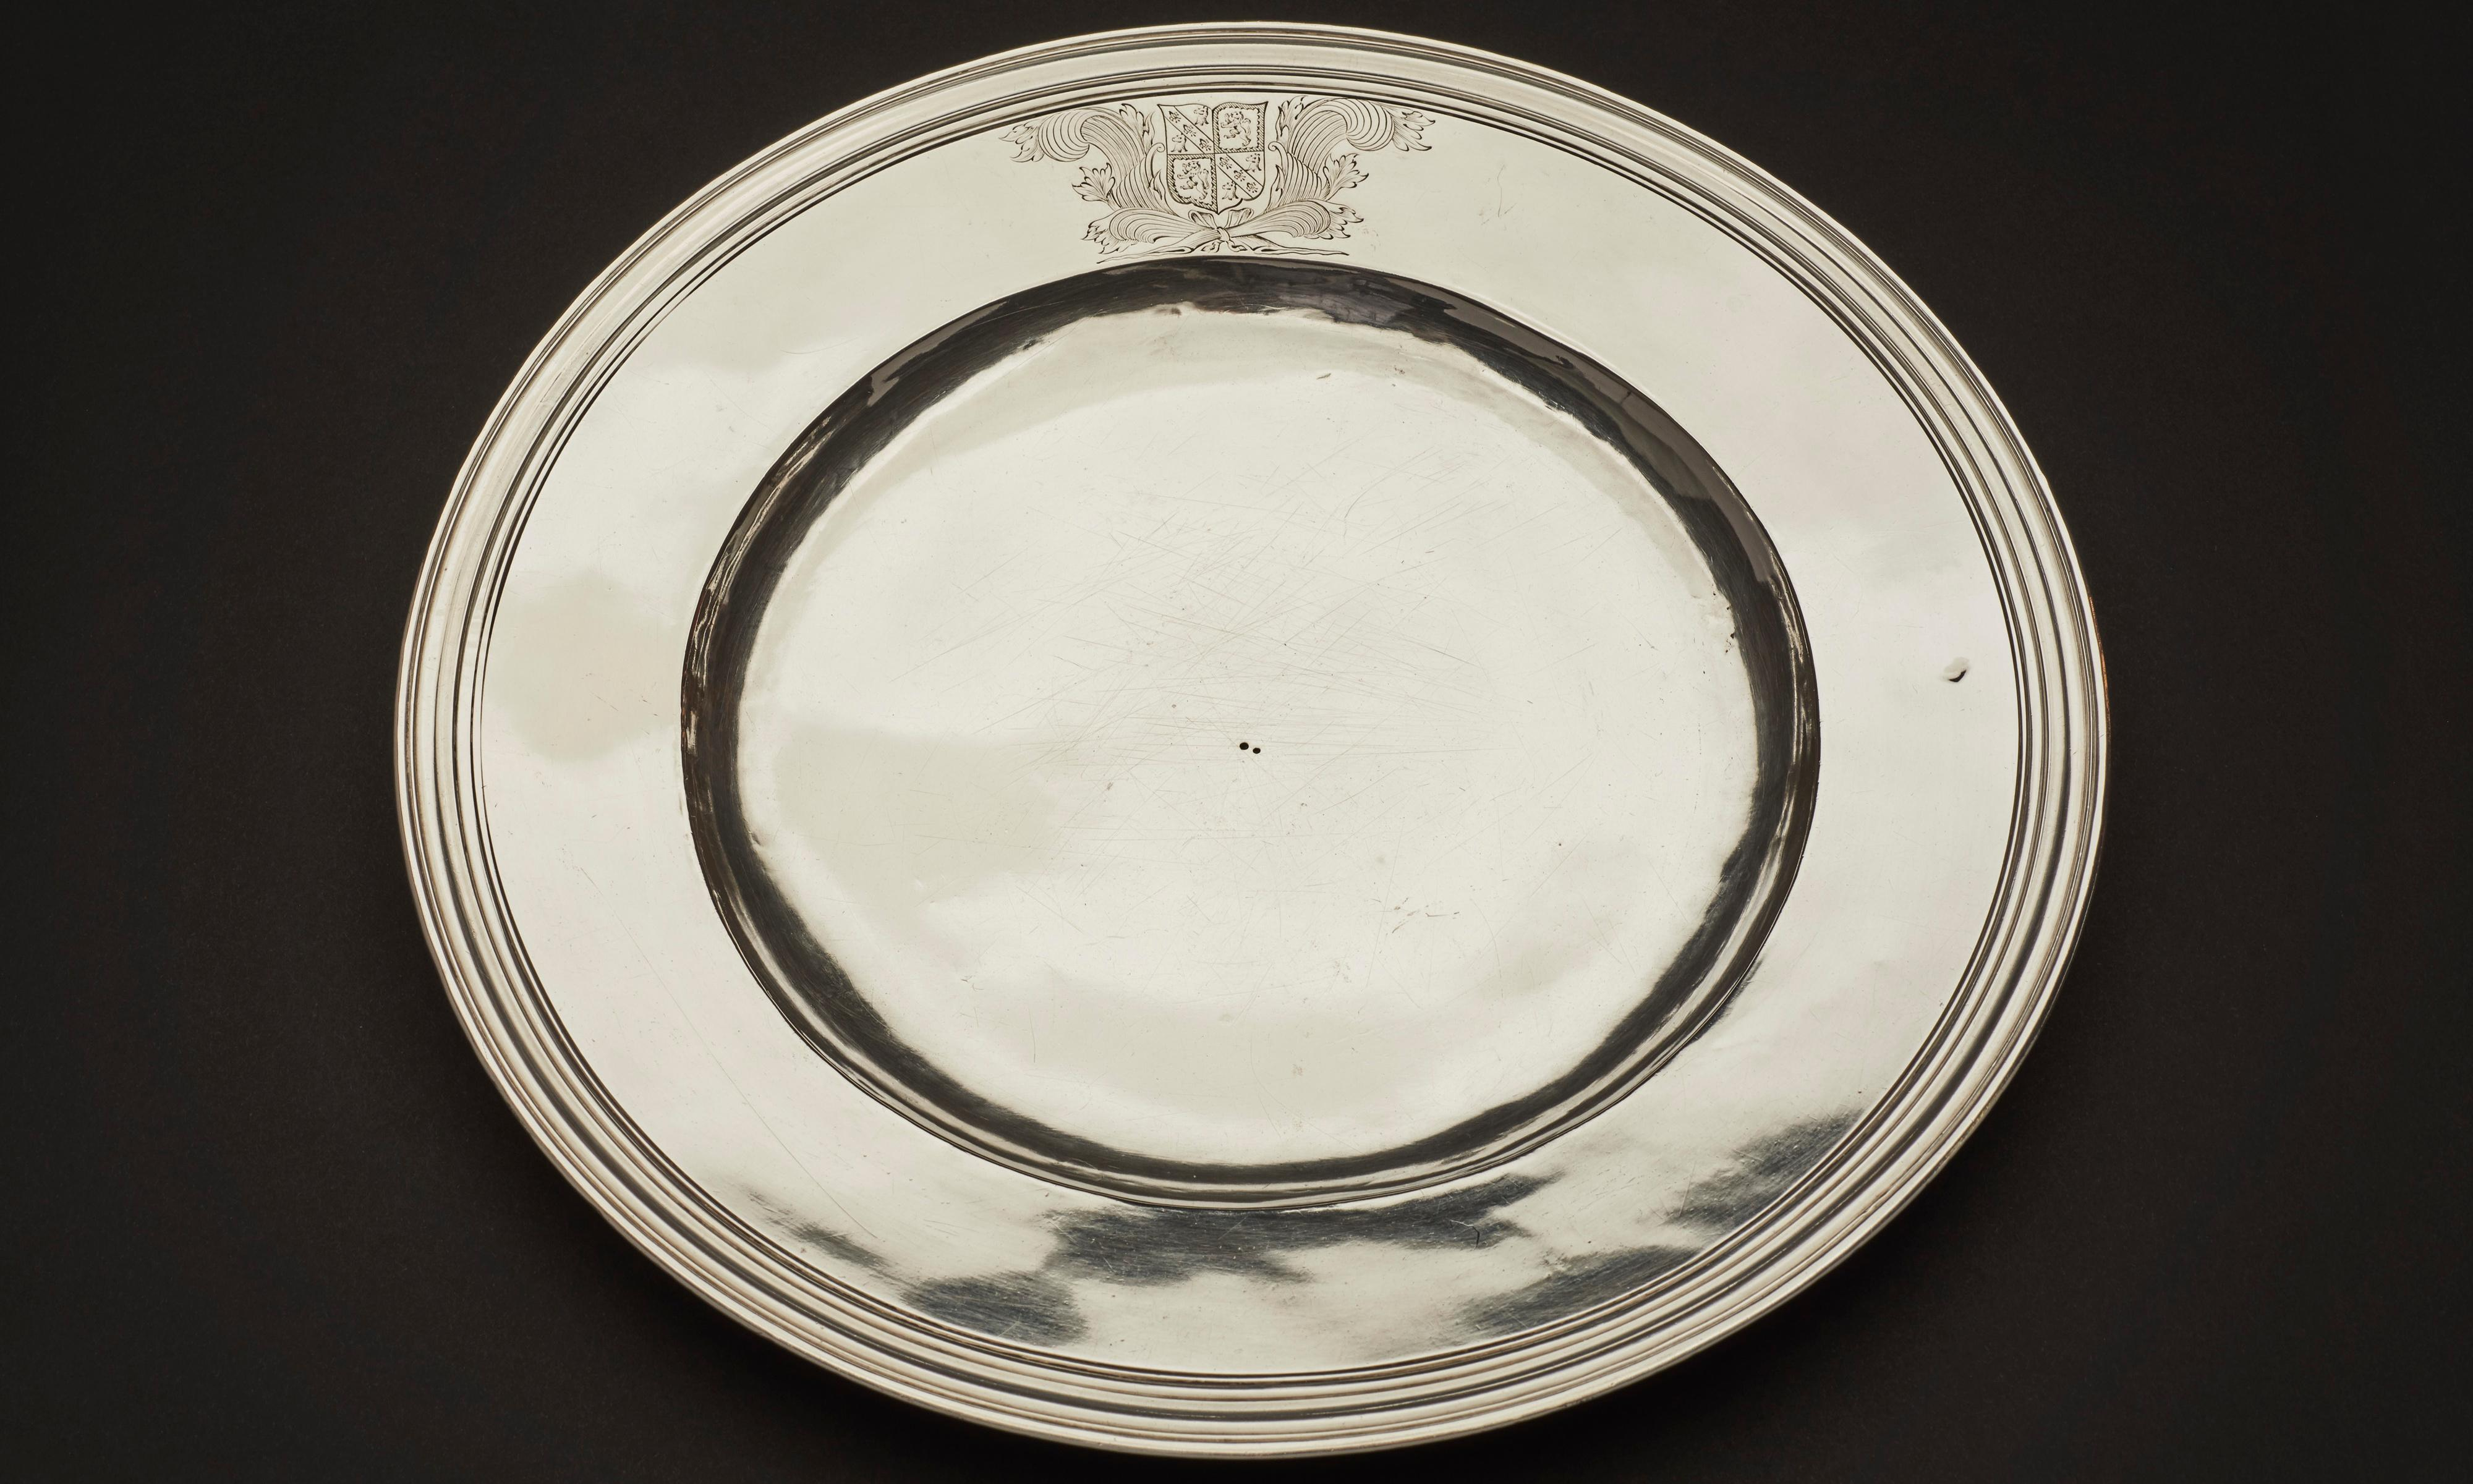 Silver plate found to belong to 17th century diarist Samuel Pepys